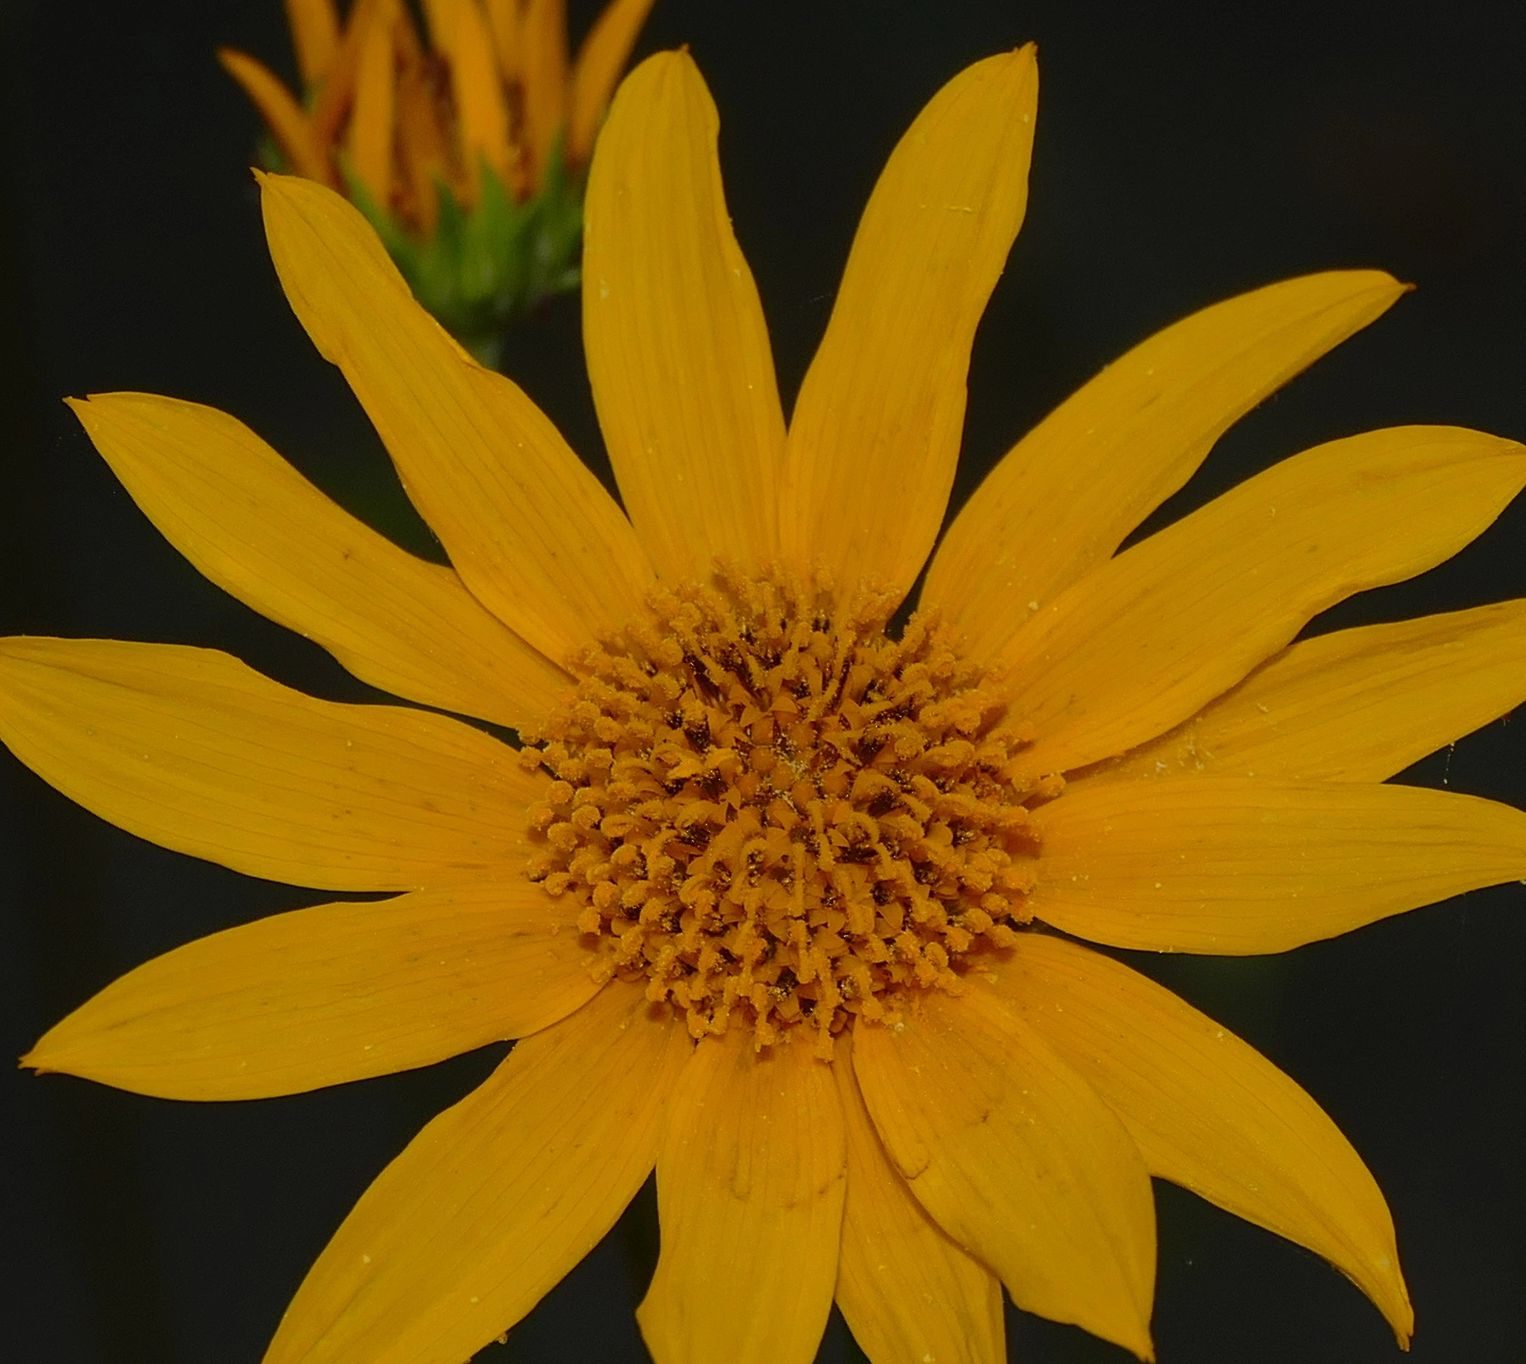 "{""blocks"":[{""key"":""auvq5"",""text"":"" Helianthus occidentalis few leaf Western Sunflower - potted plants  john@easywildflowers.com \t "",""type"":""unstyled"",""depth"":0,""inlineStyleRanges"":[],""entityRanges"":[],""data"":{}}],""entityMap"":{}}"